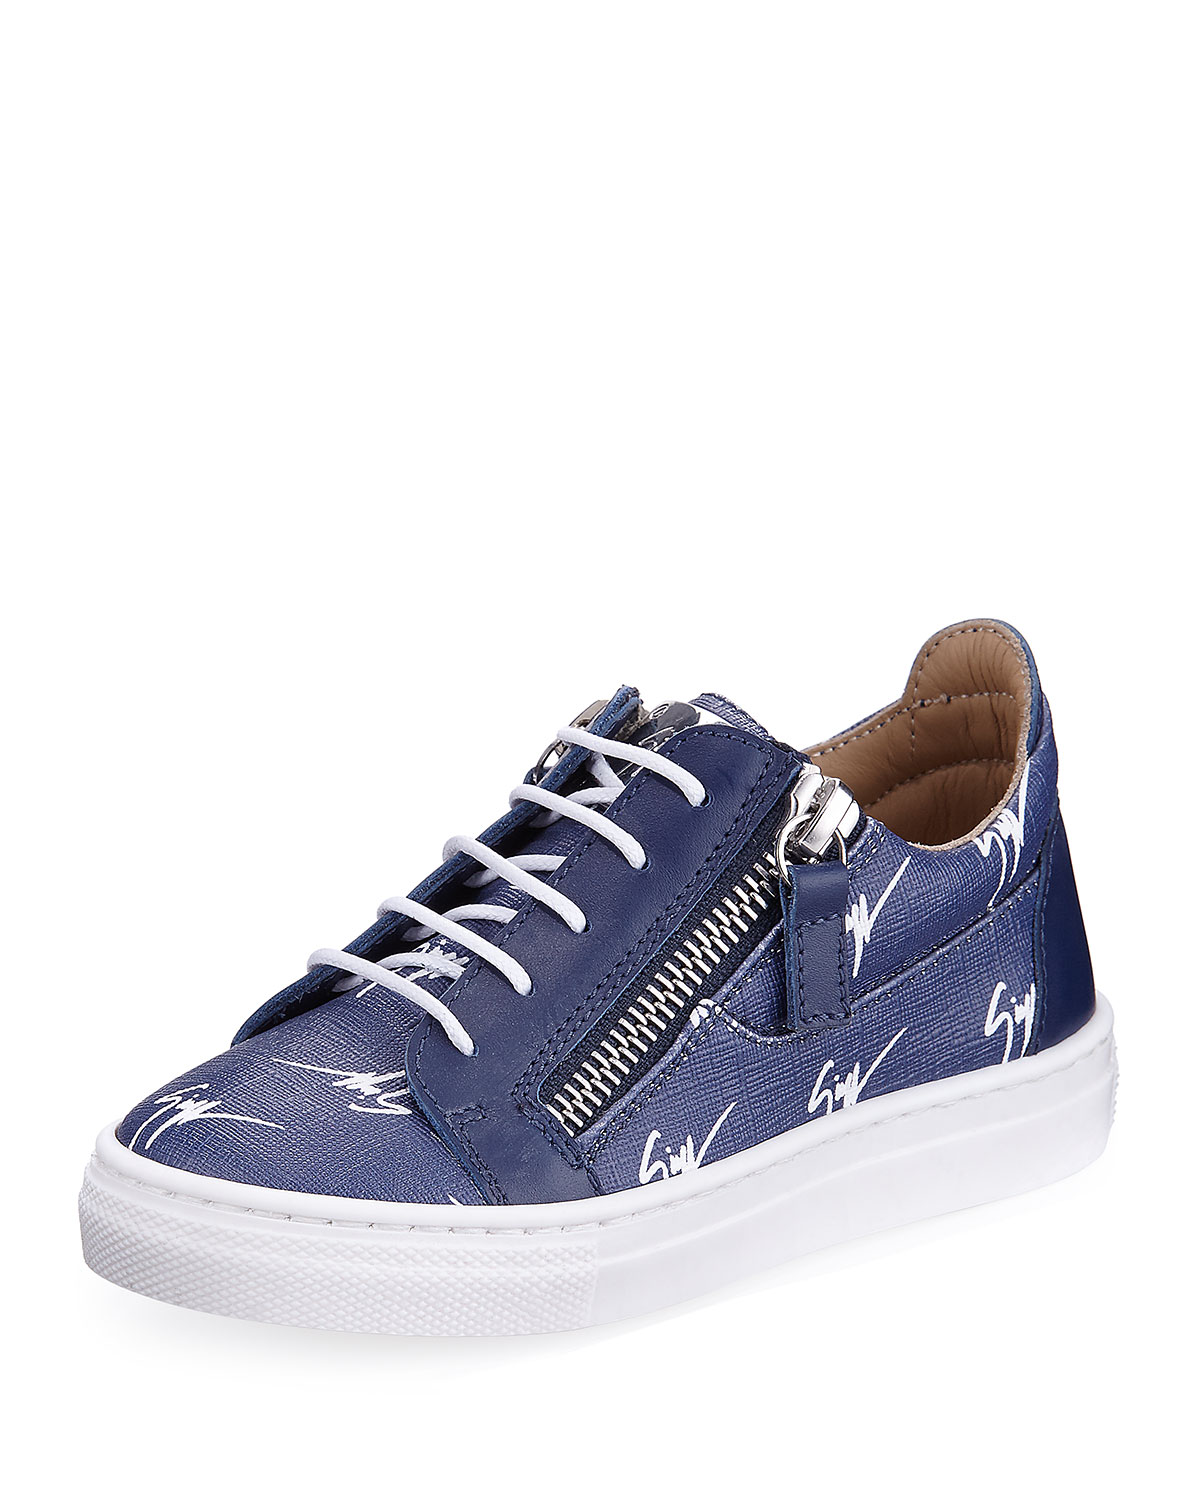 4b9734ed3e55a Giuseppe Zanotti Logo-Print Leather Low-Top Sneaker, Toddler/Youth Sizes  10T-1Y | Neiman Marcus